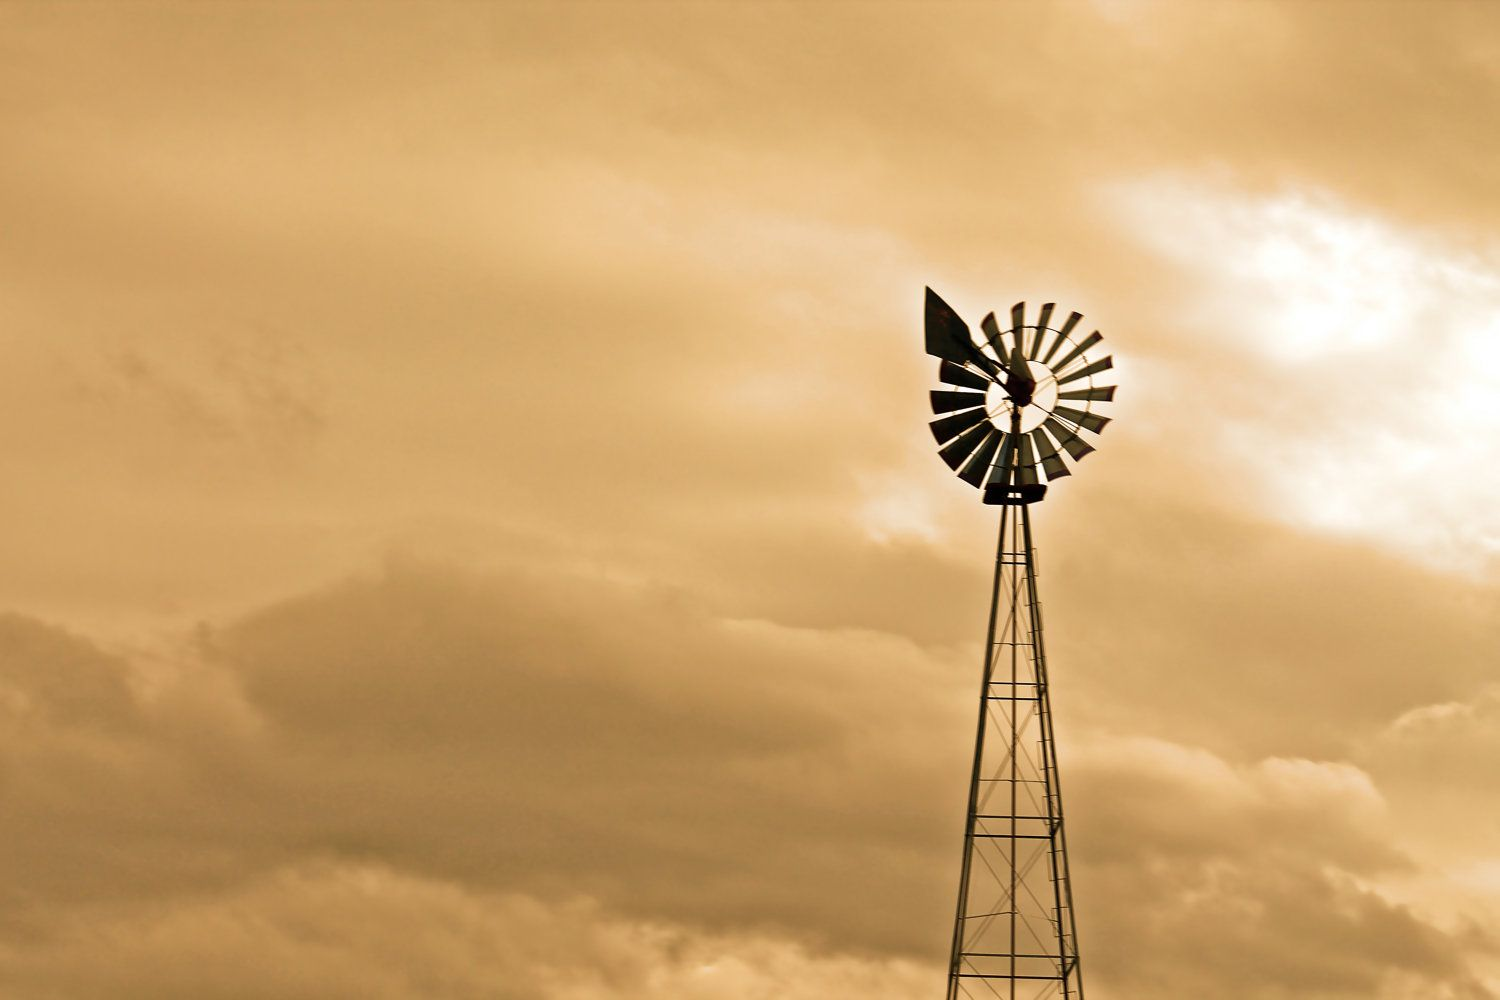 Country Windmill in Orange - 8x10 - Photograph. $12.95 by PickaPic via Etsy.